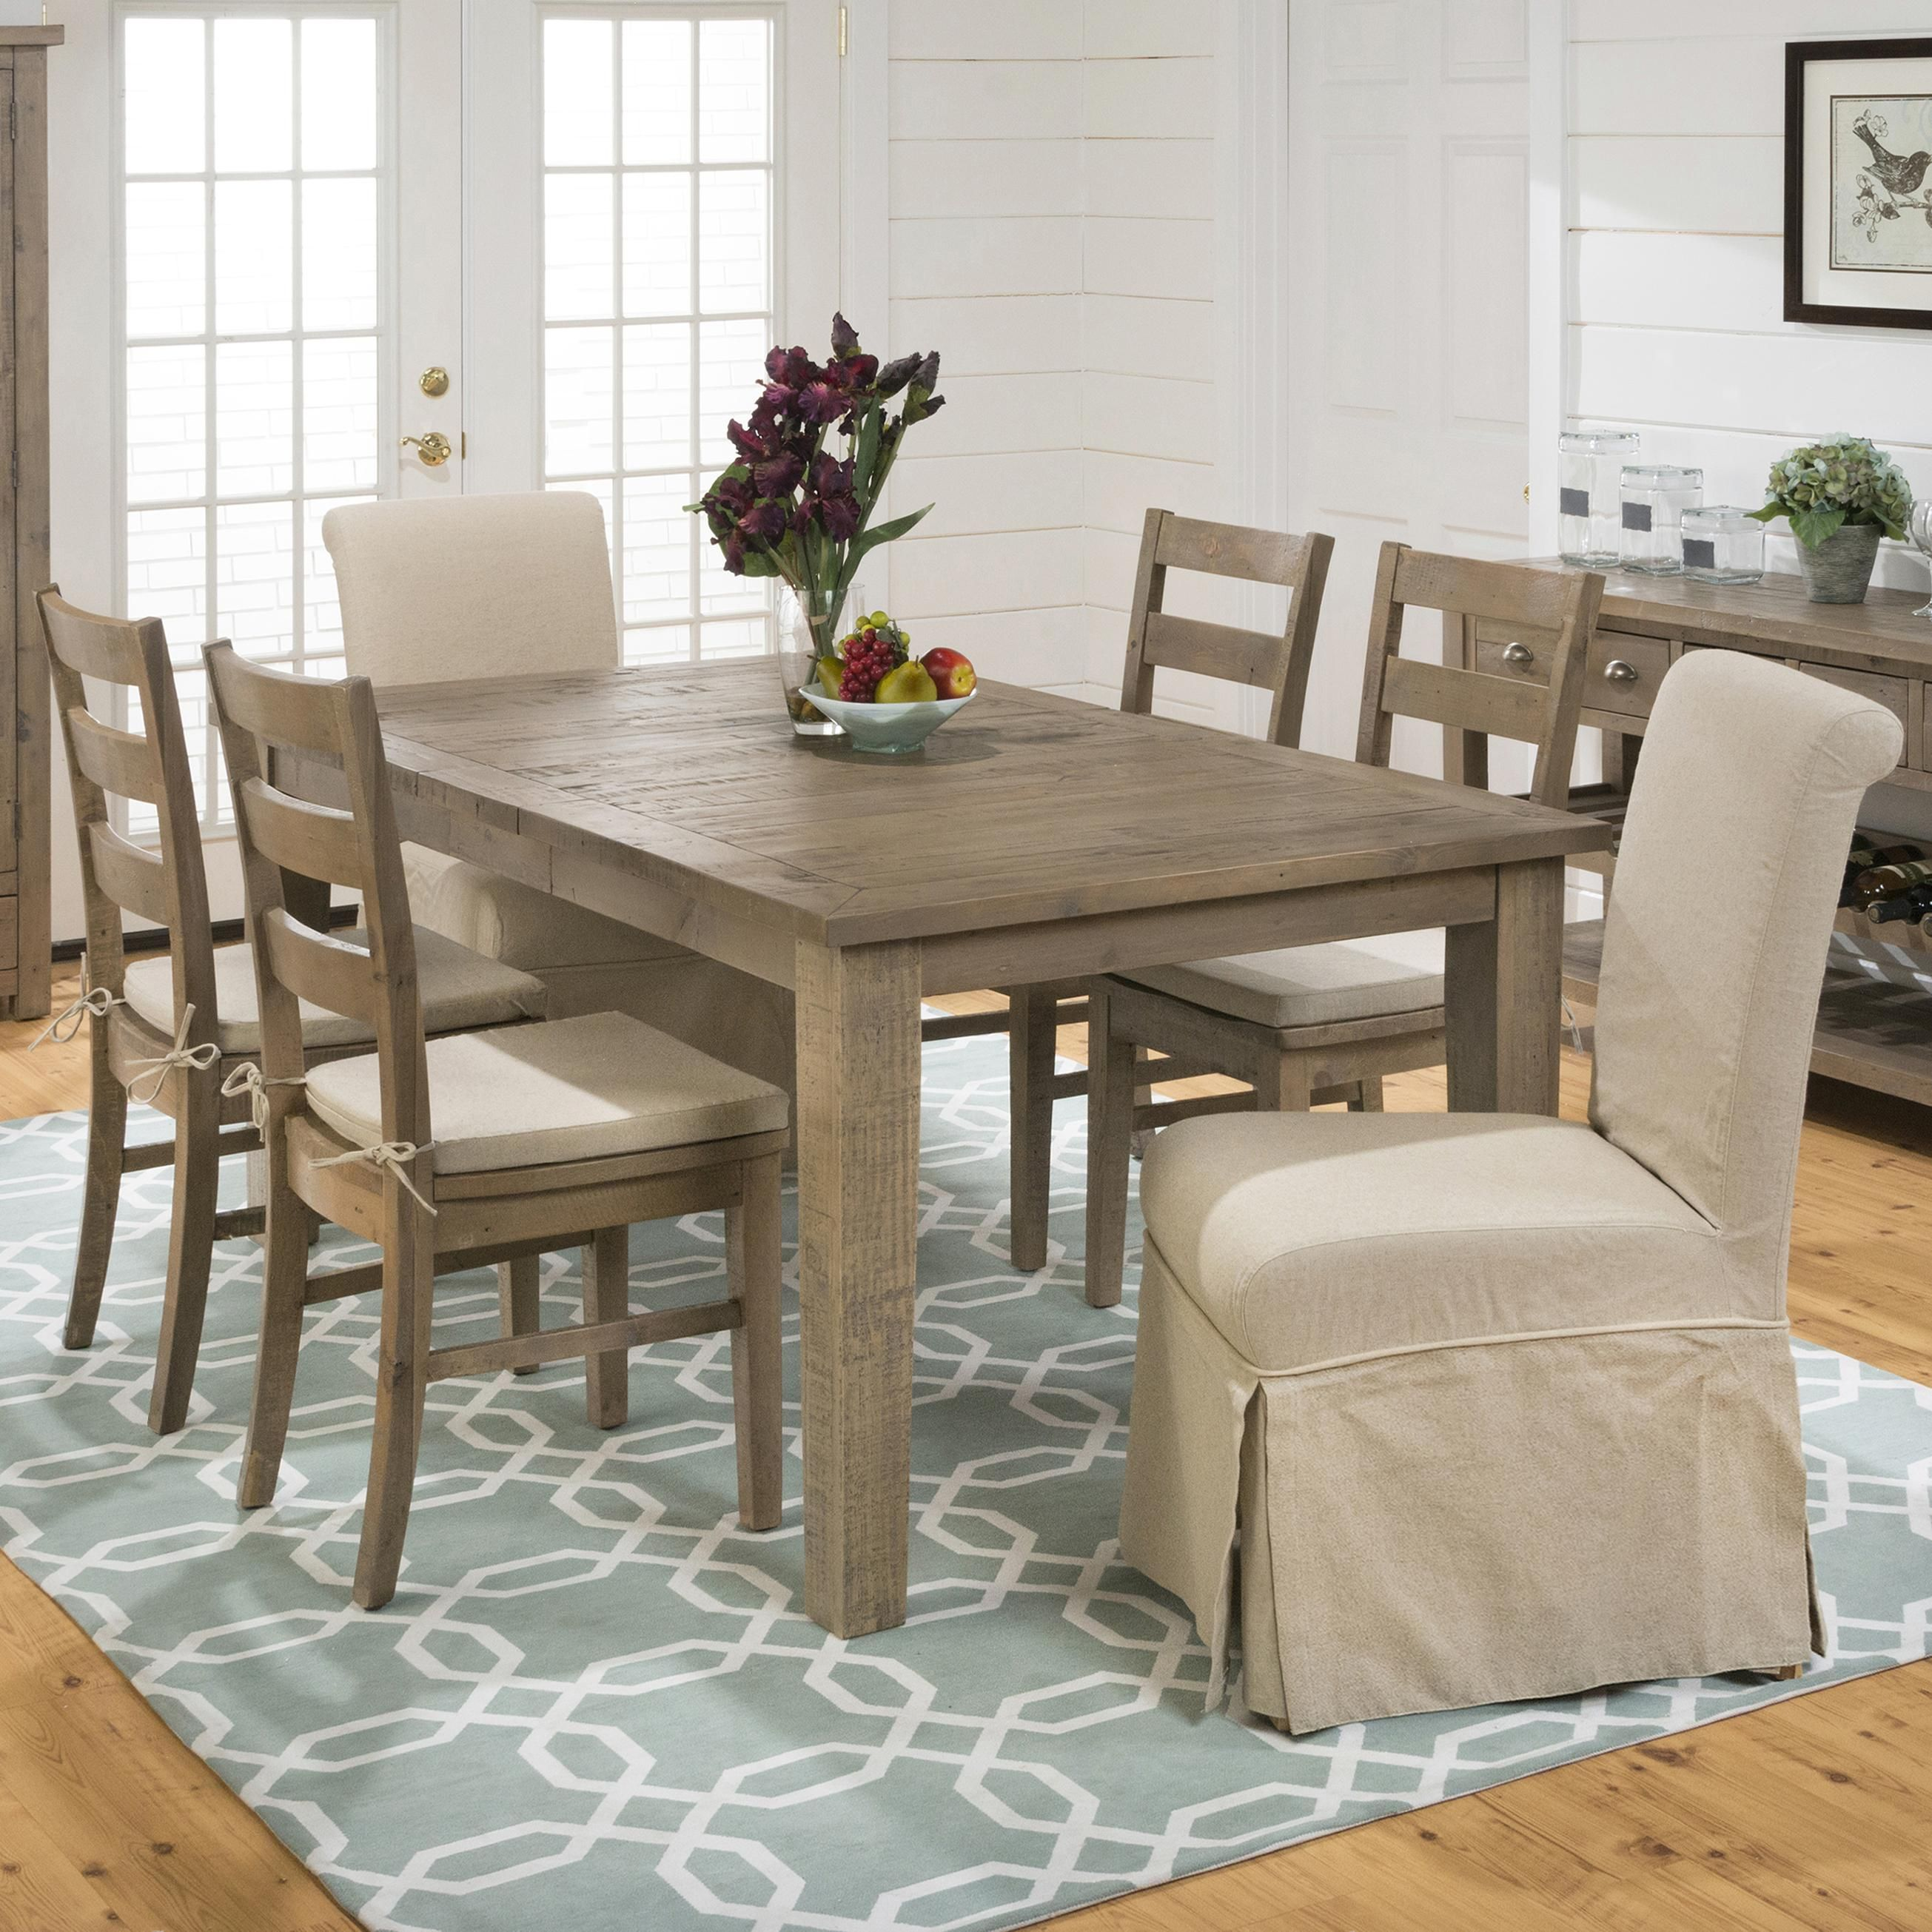 dinning ideas dining coastal beach table beachy rooms tables sets and house full themed cottage of cottages set chairs size kitchen style room